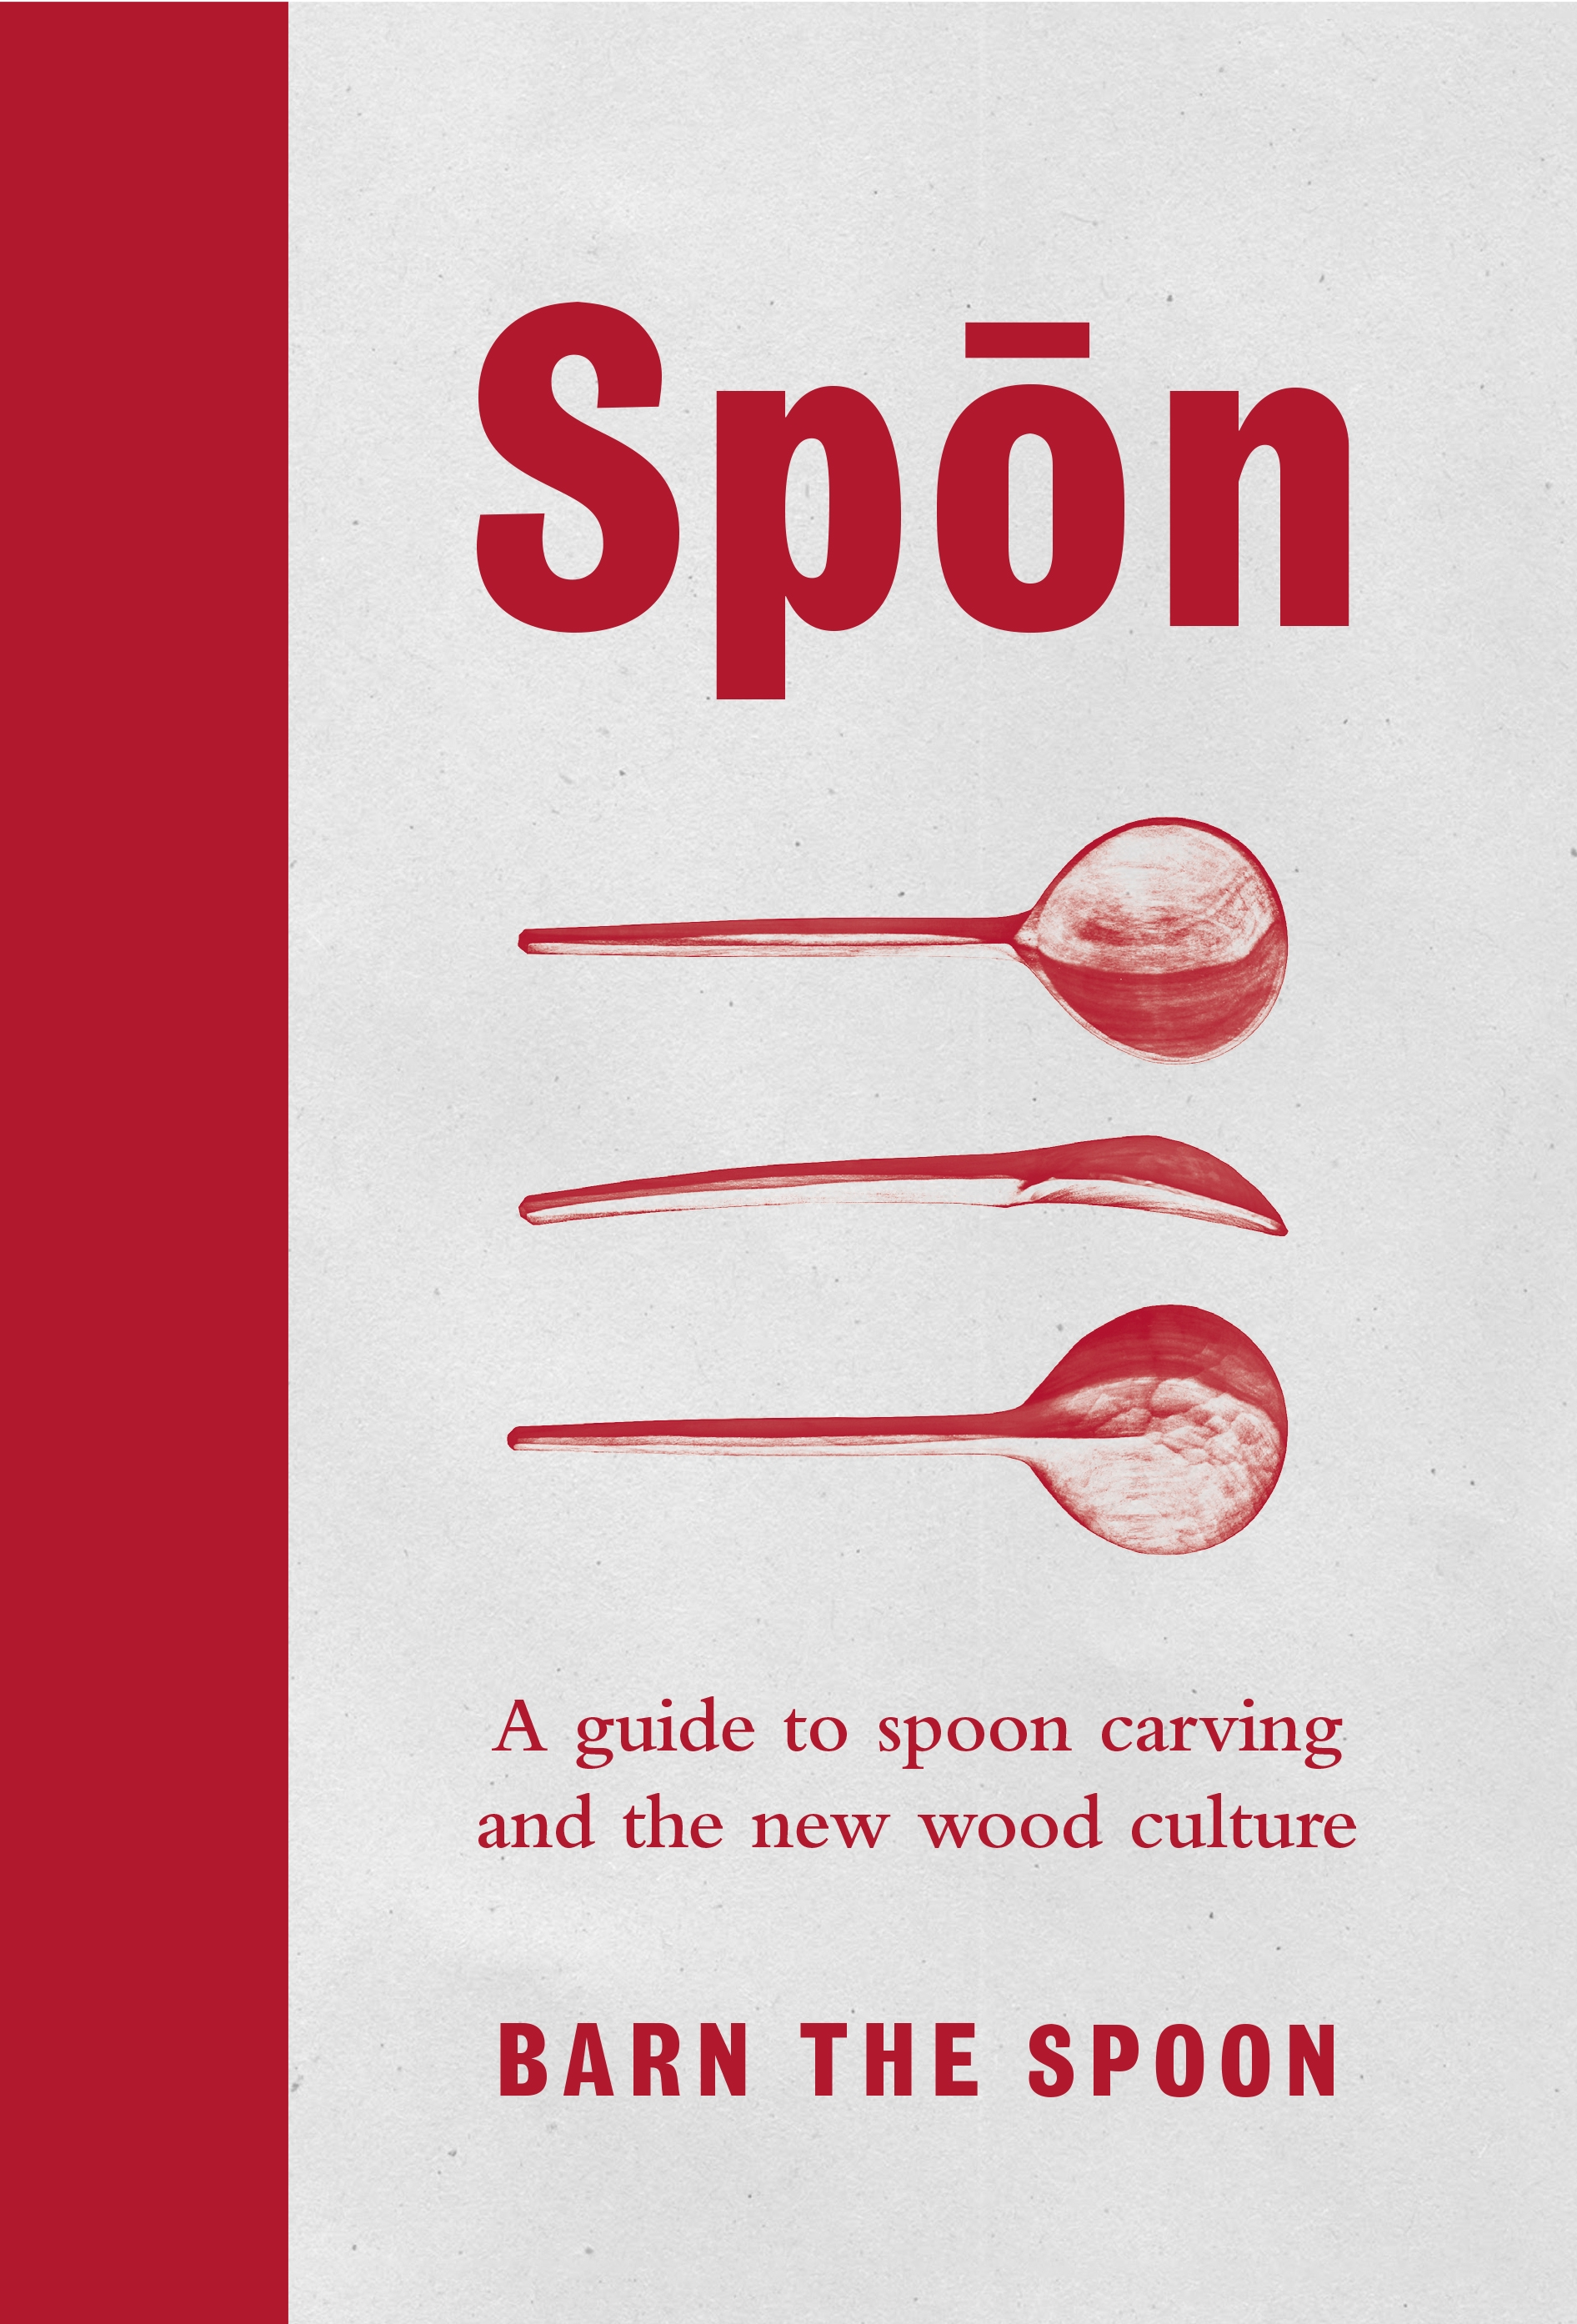 Spon: A Guide to Spoon Carving and the New Wood Culture by Barn The Spoon, ISBN: 9780753545973